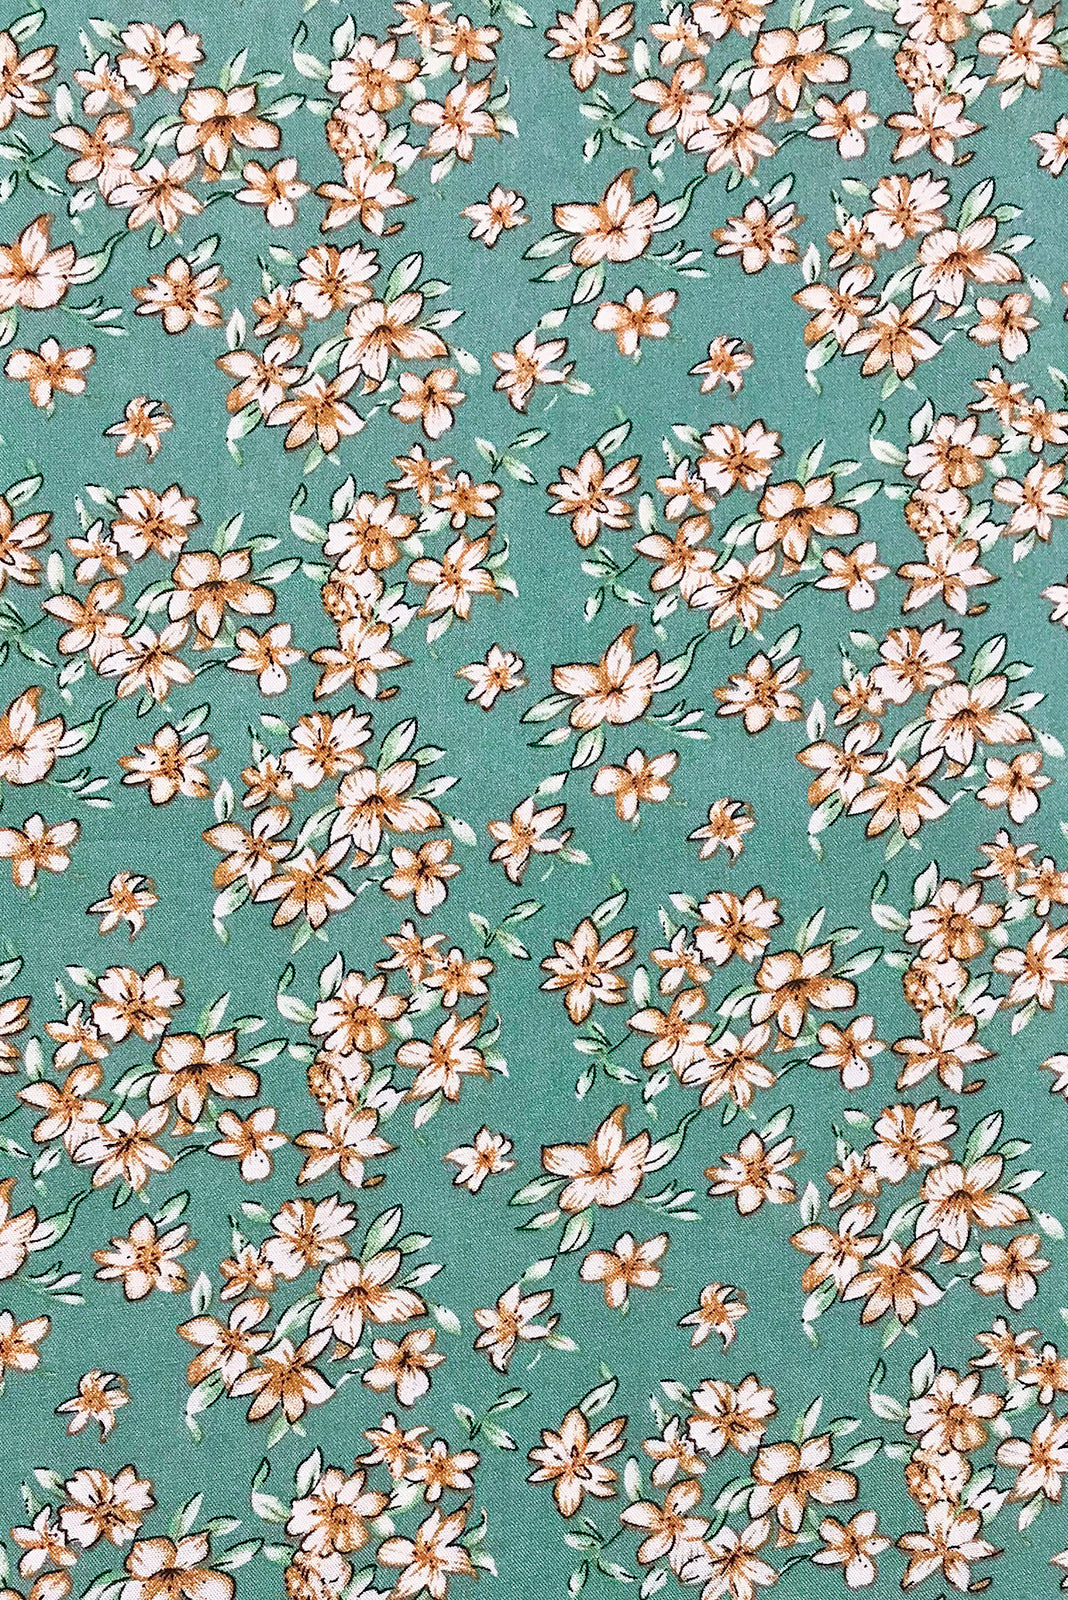 Fabric Swatch of Sails Sage Scatter Maxi Skirt features woven 100% rayon in Soft green base with dainty floral print.